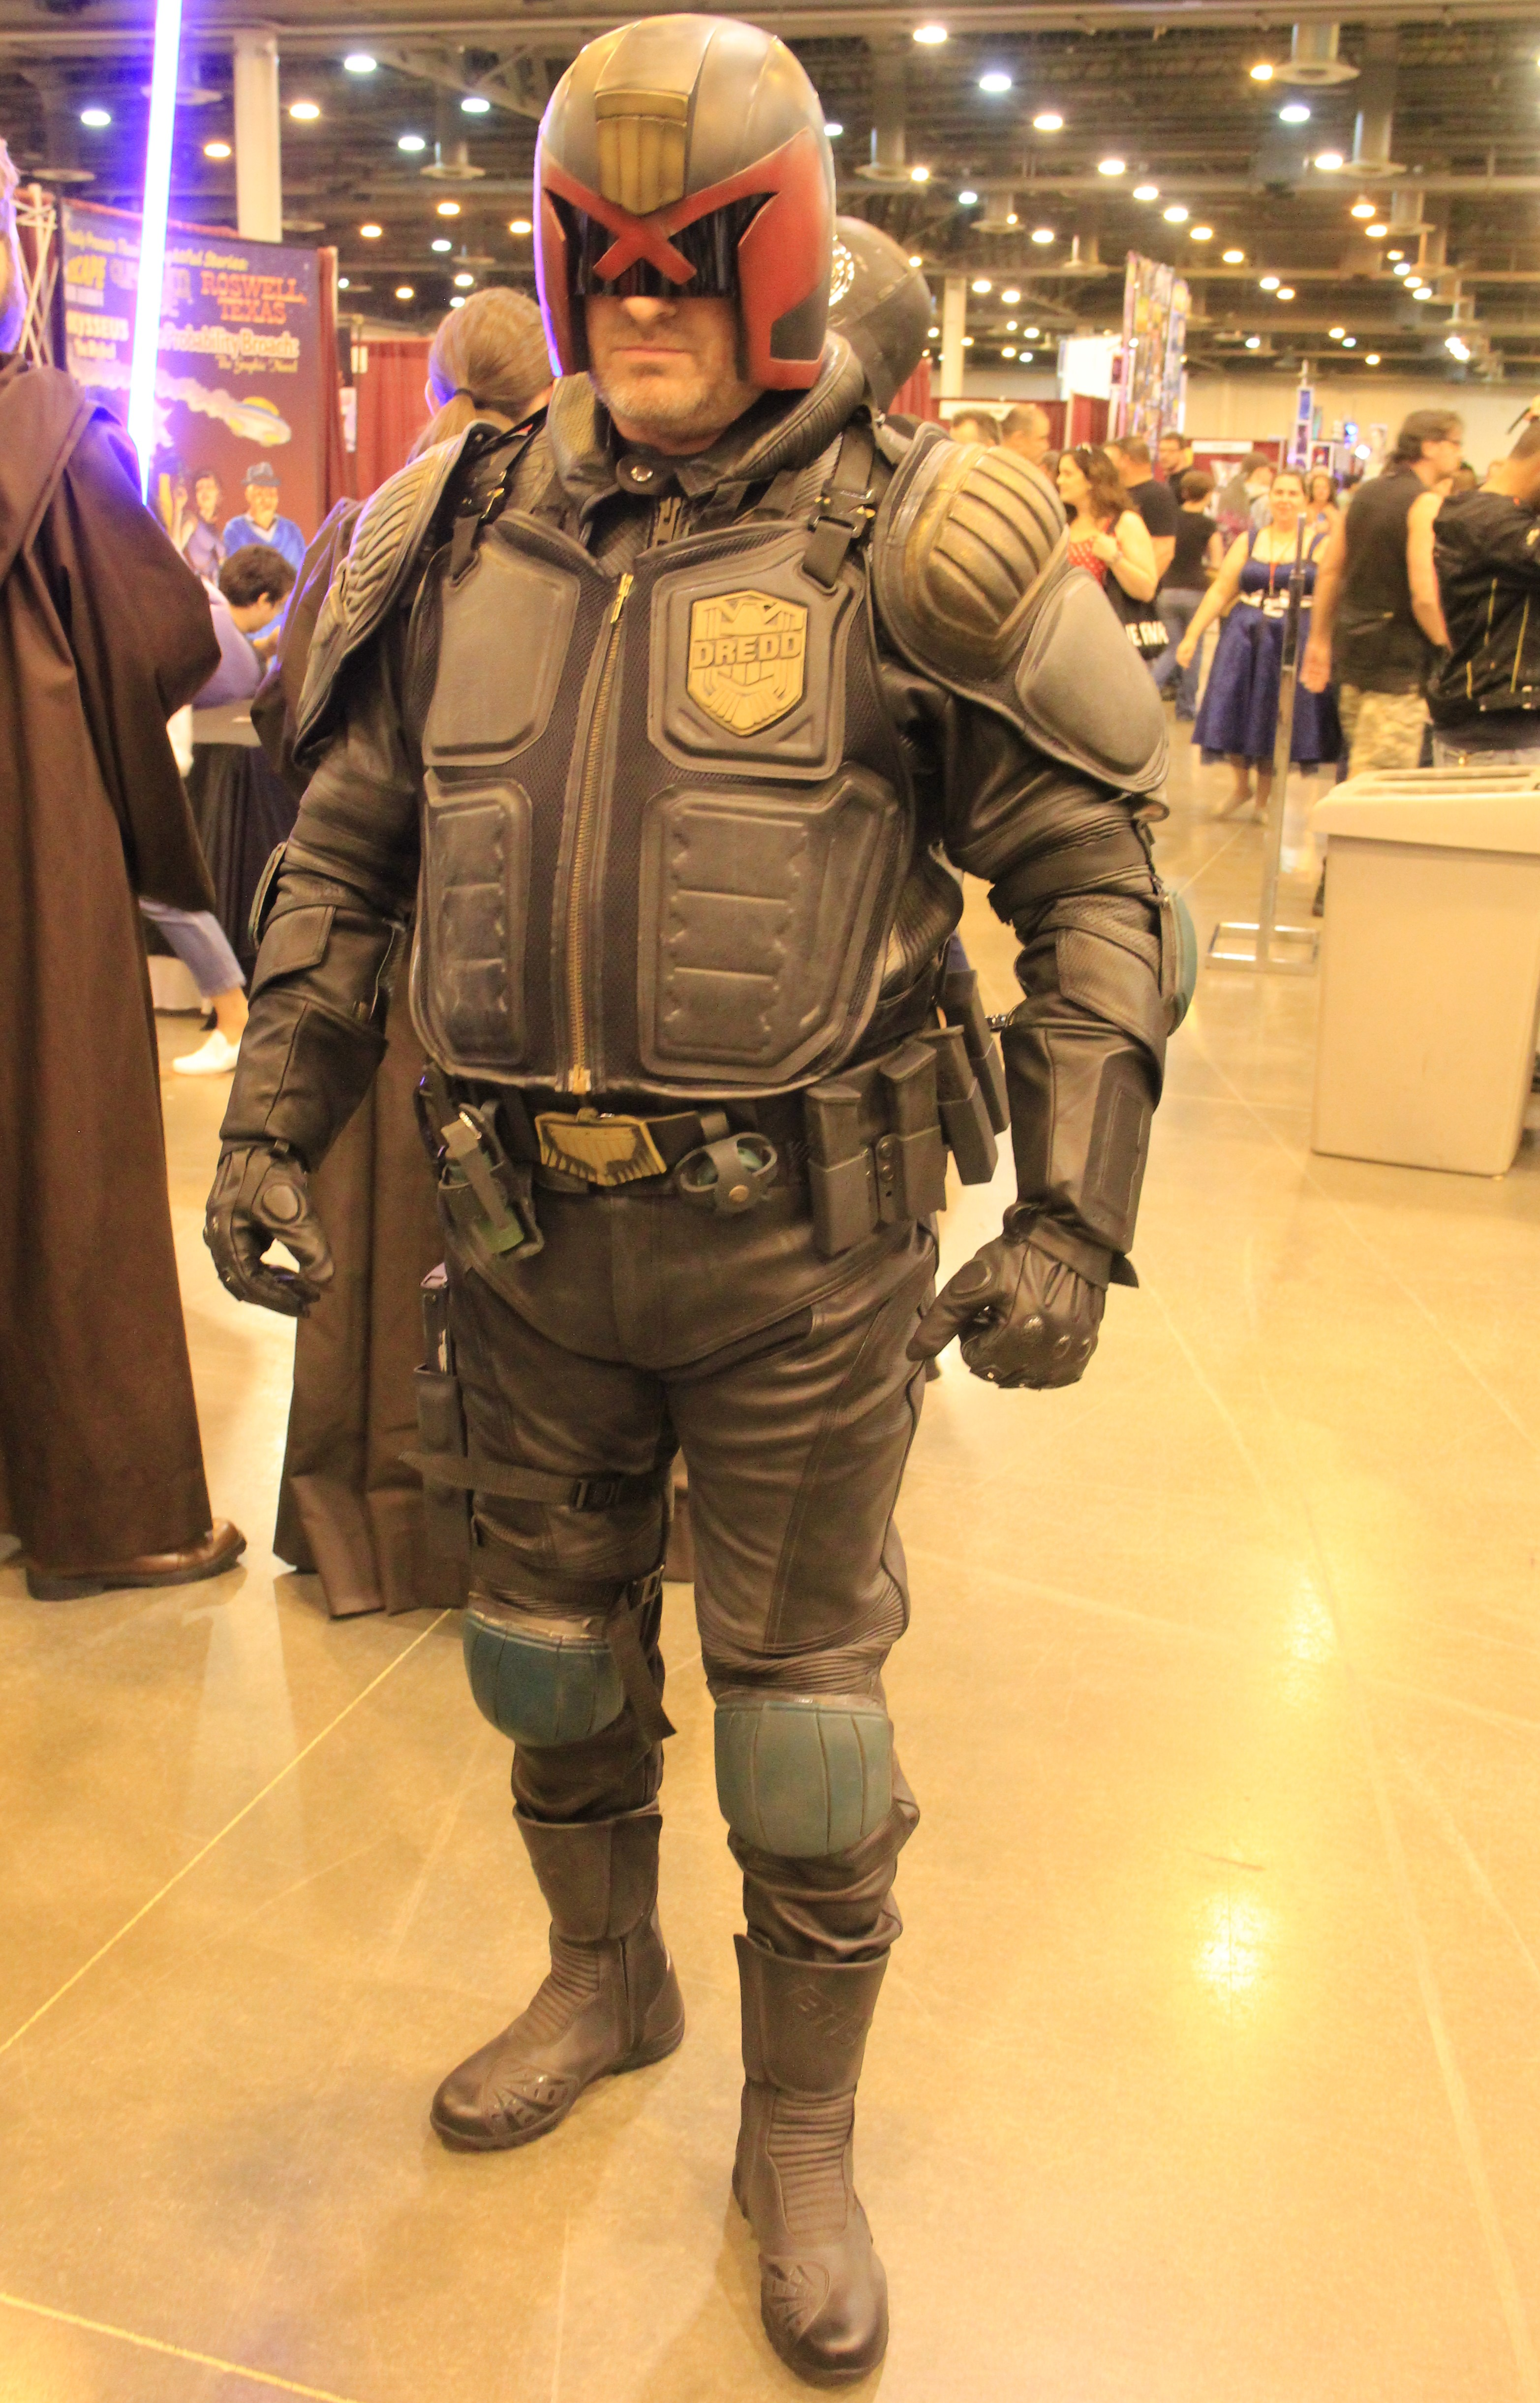 Space City 2016 - Cosplay (27285151466).jpg IMG_6454 Taken at the 2016 Space City Comic Con in Houston, Texas. Date 28 May 2016, 02:27 Source